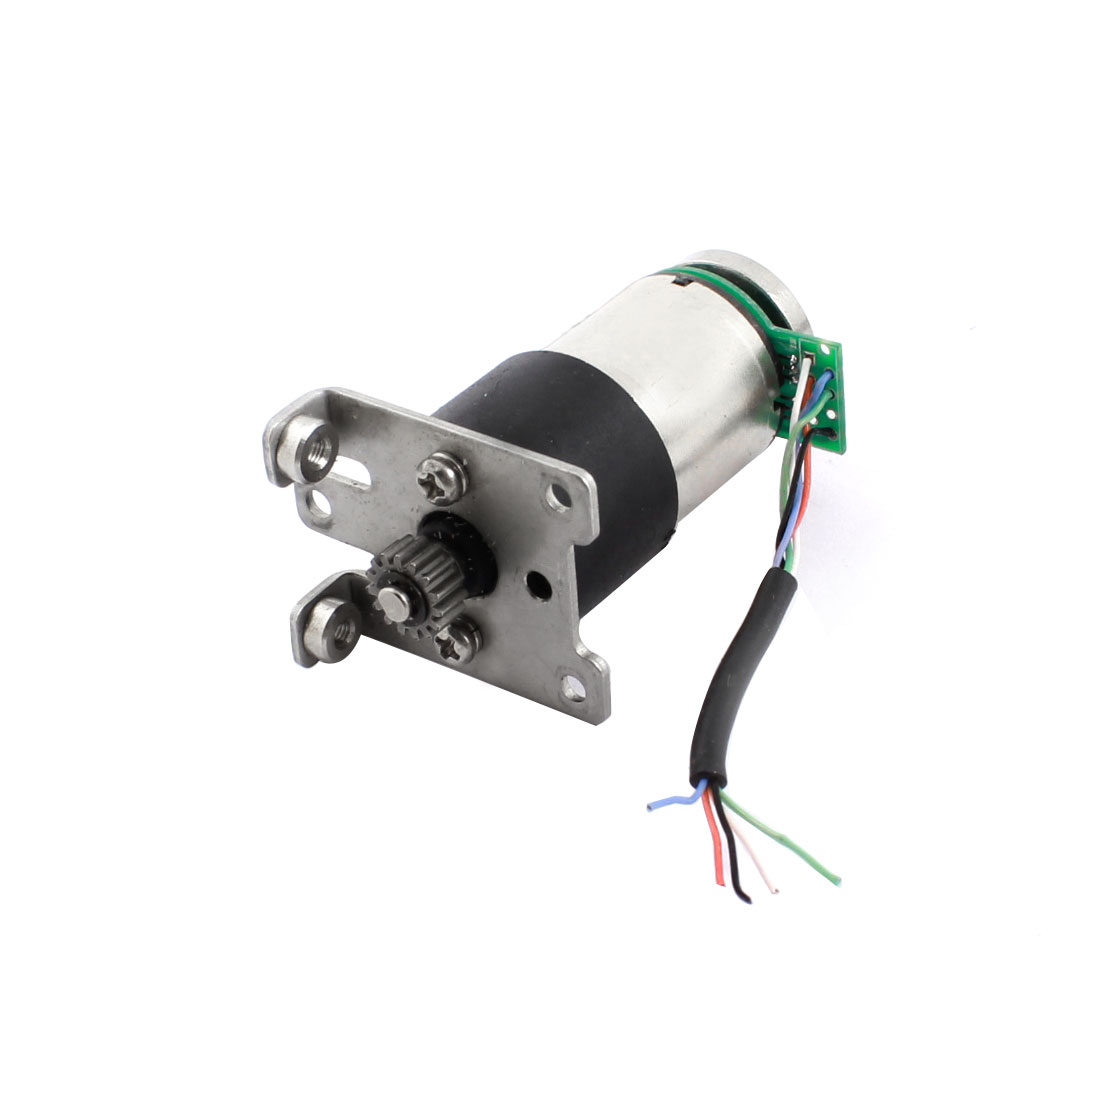 DC 12V 70RPM 4mm Shaft Electric Gear Box Geared Speed Reducer Motor